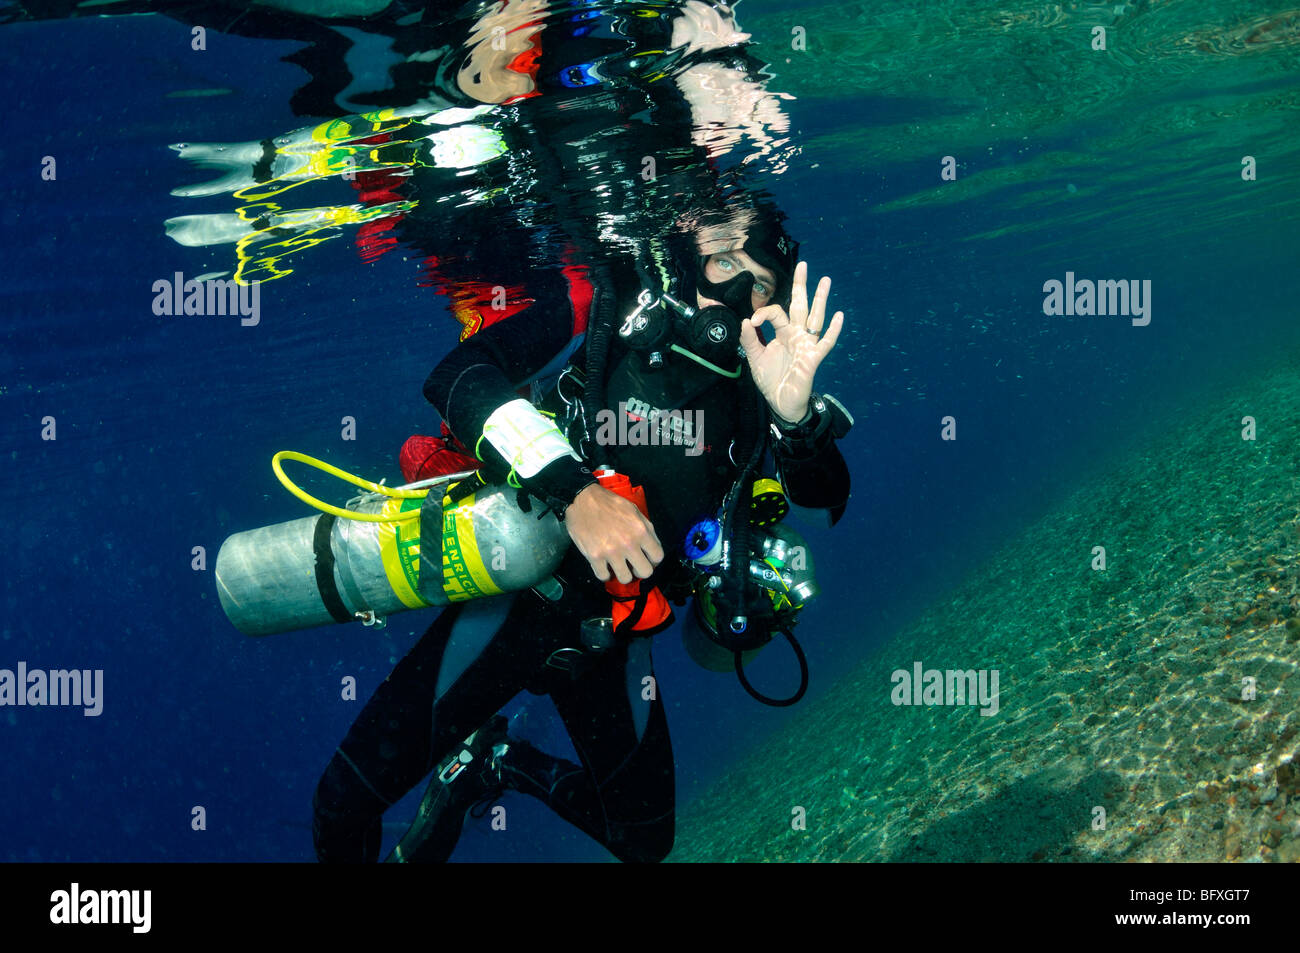 Technical scuba diver with multiple cylinders at surface giving 'OK' sign Ras Abu Gallum, 'Red Sea' - Stock Image